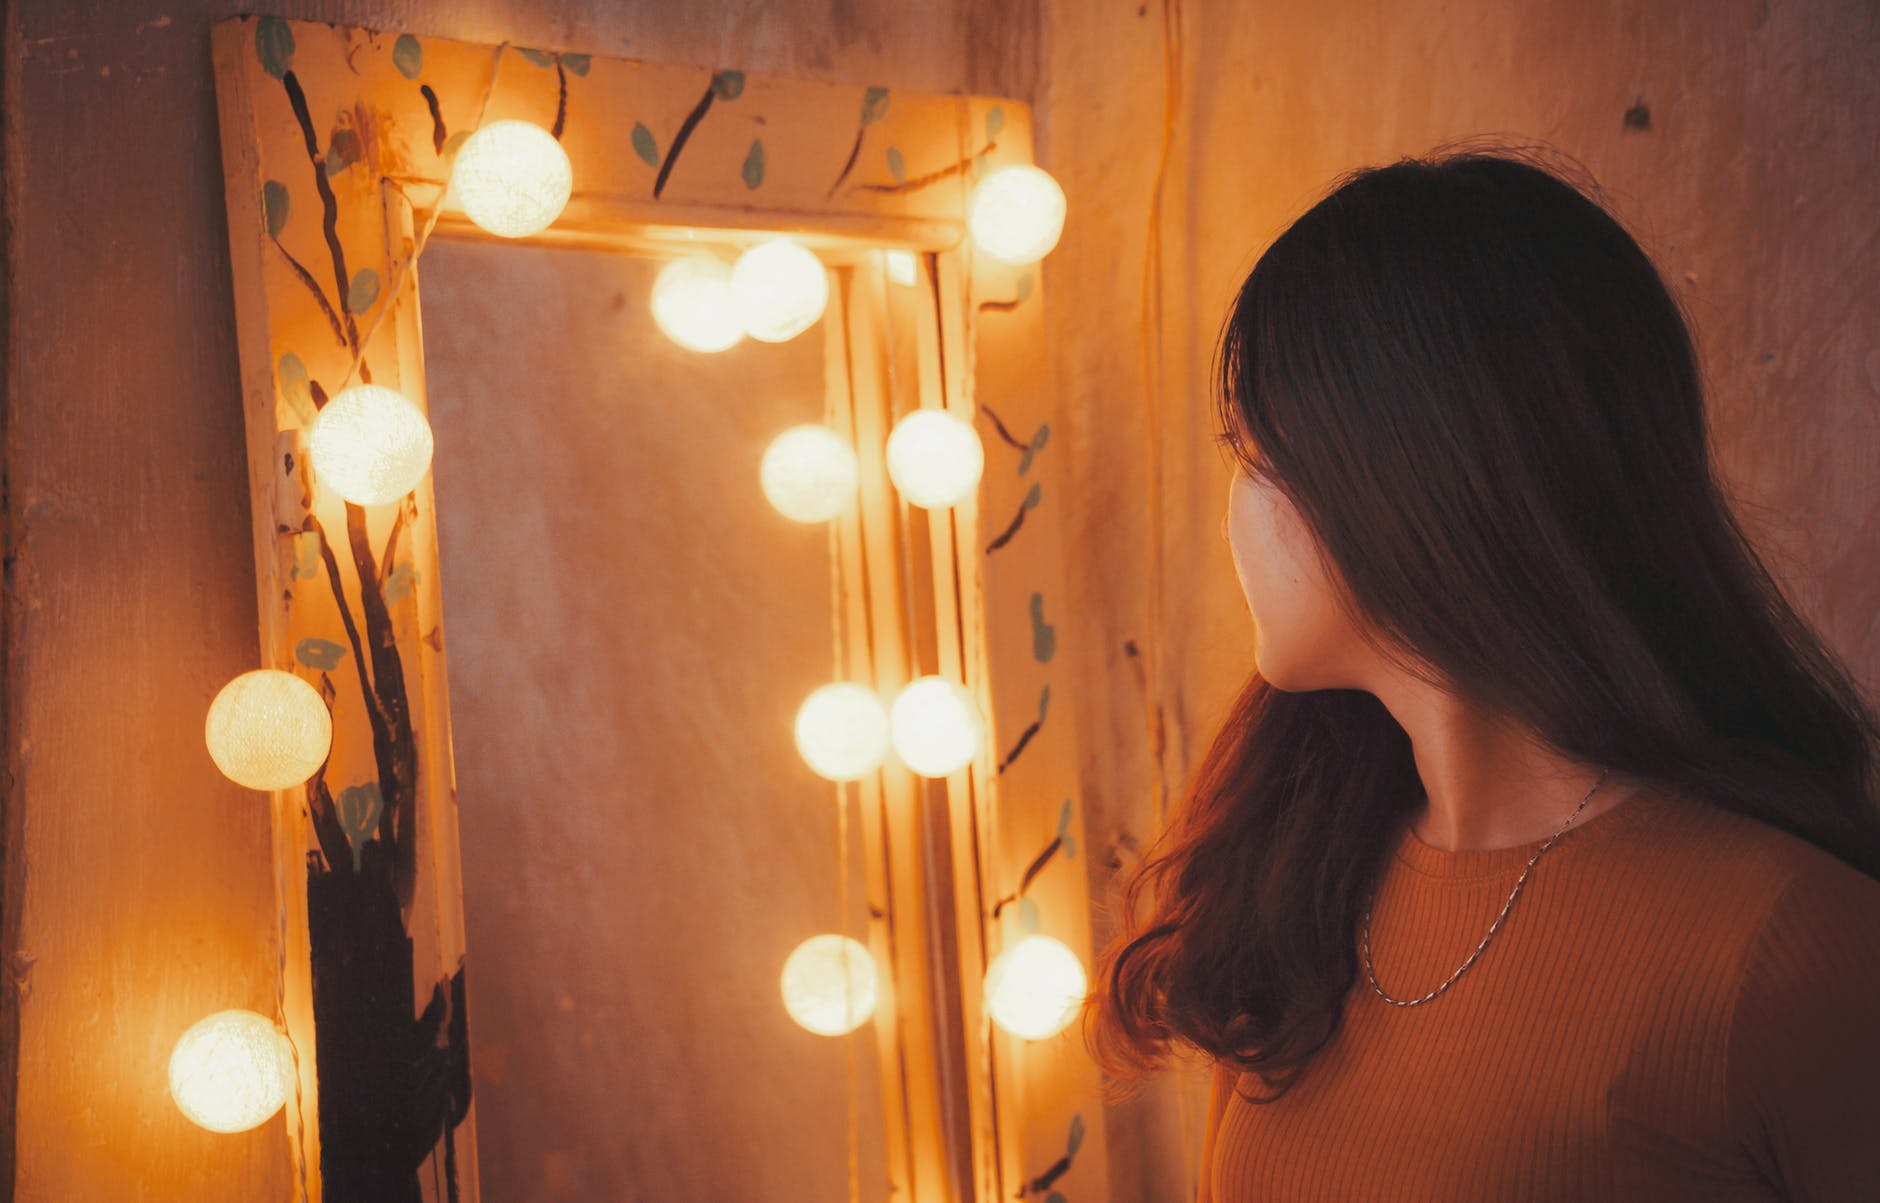 Woman looking at herself in a lighted mirror